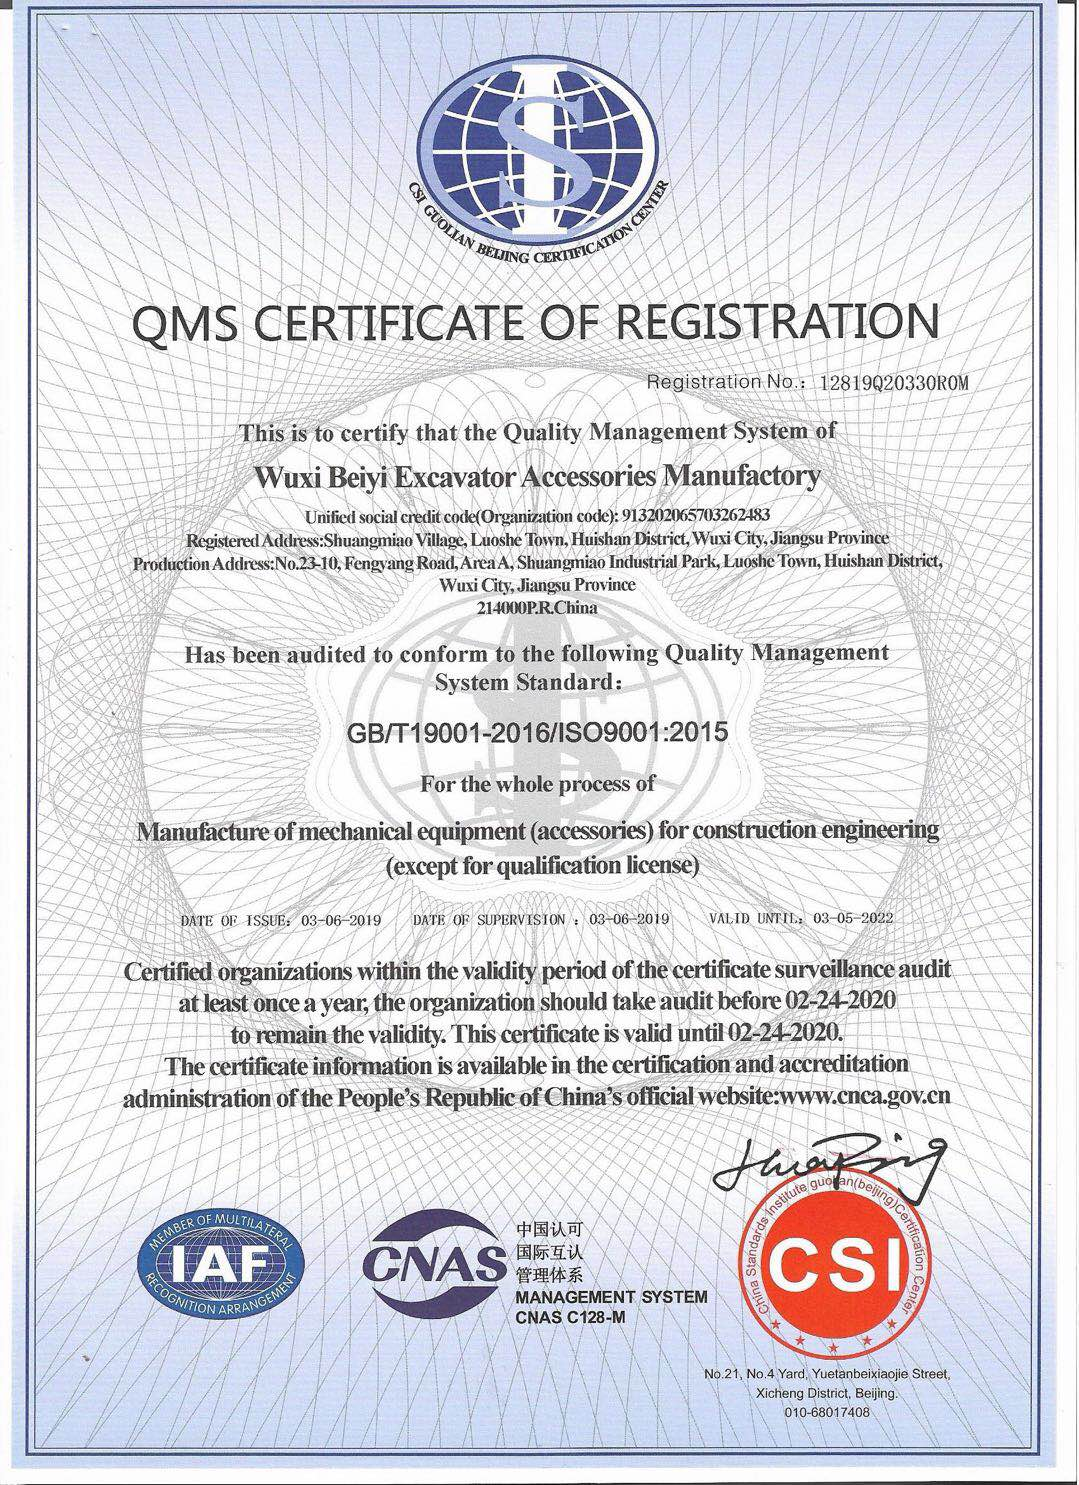 QMS CERTIFICATE OF REGISTRATION證書圖片